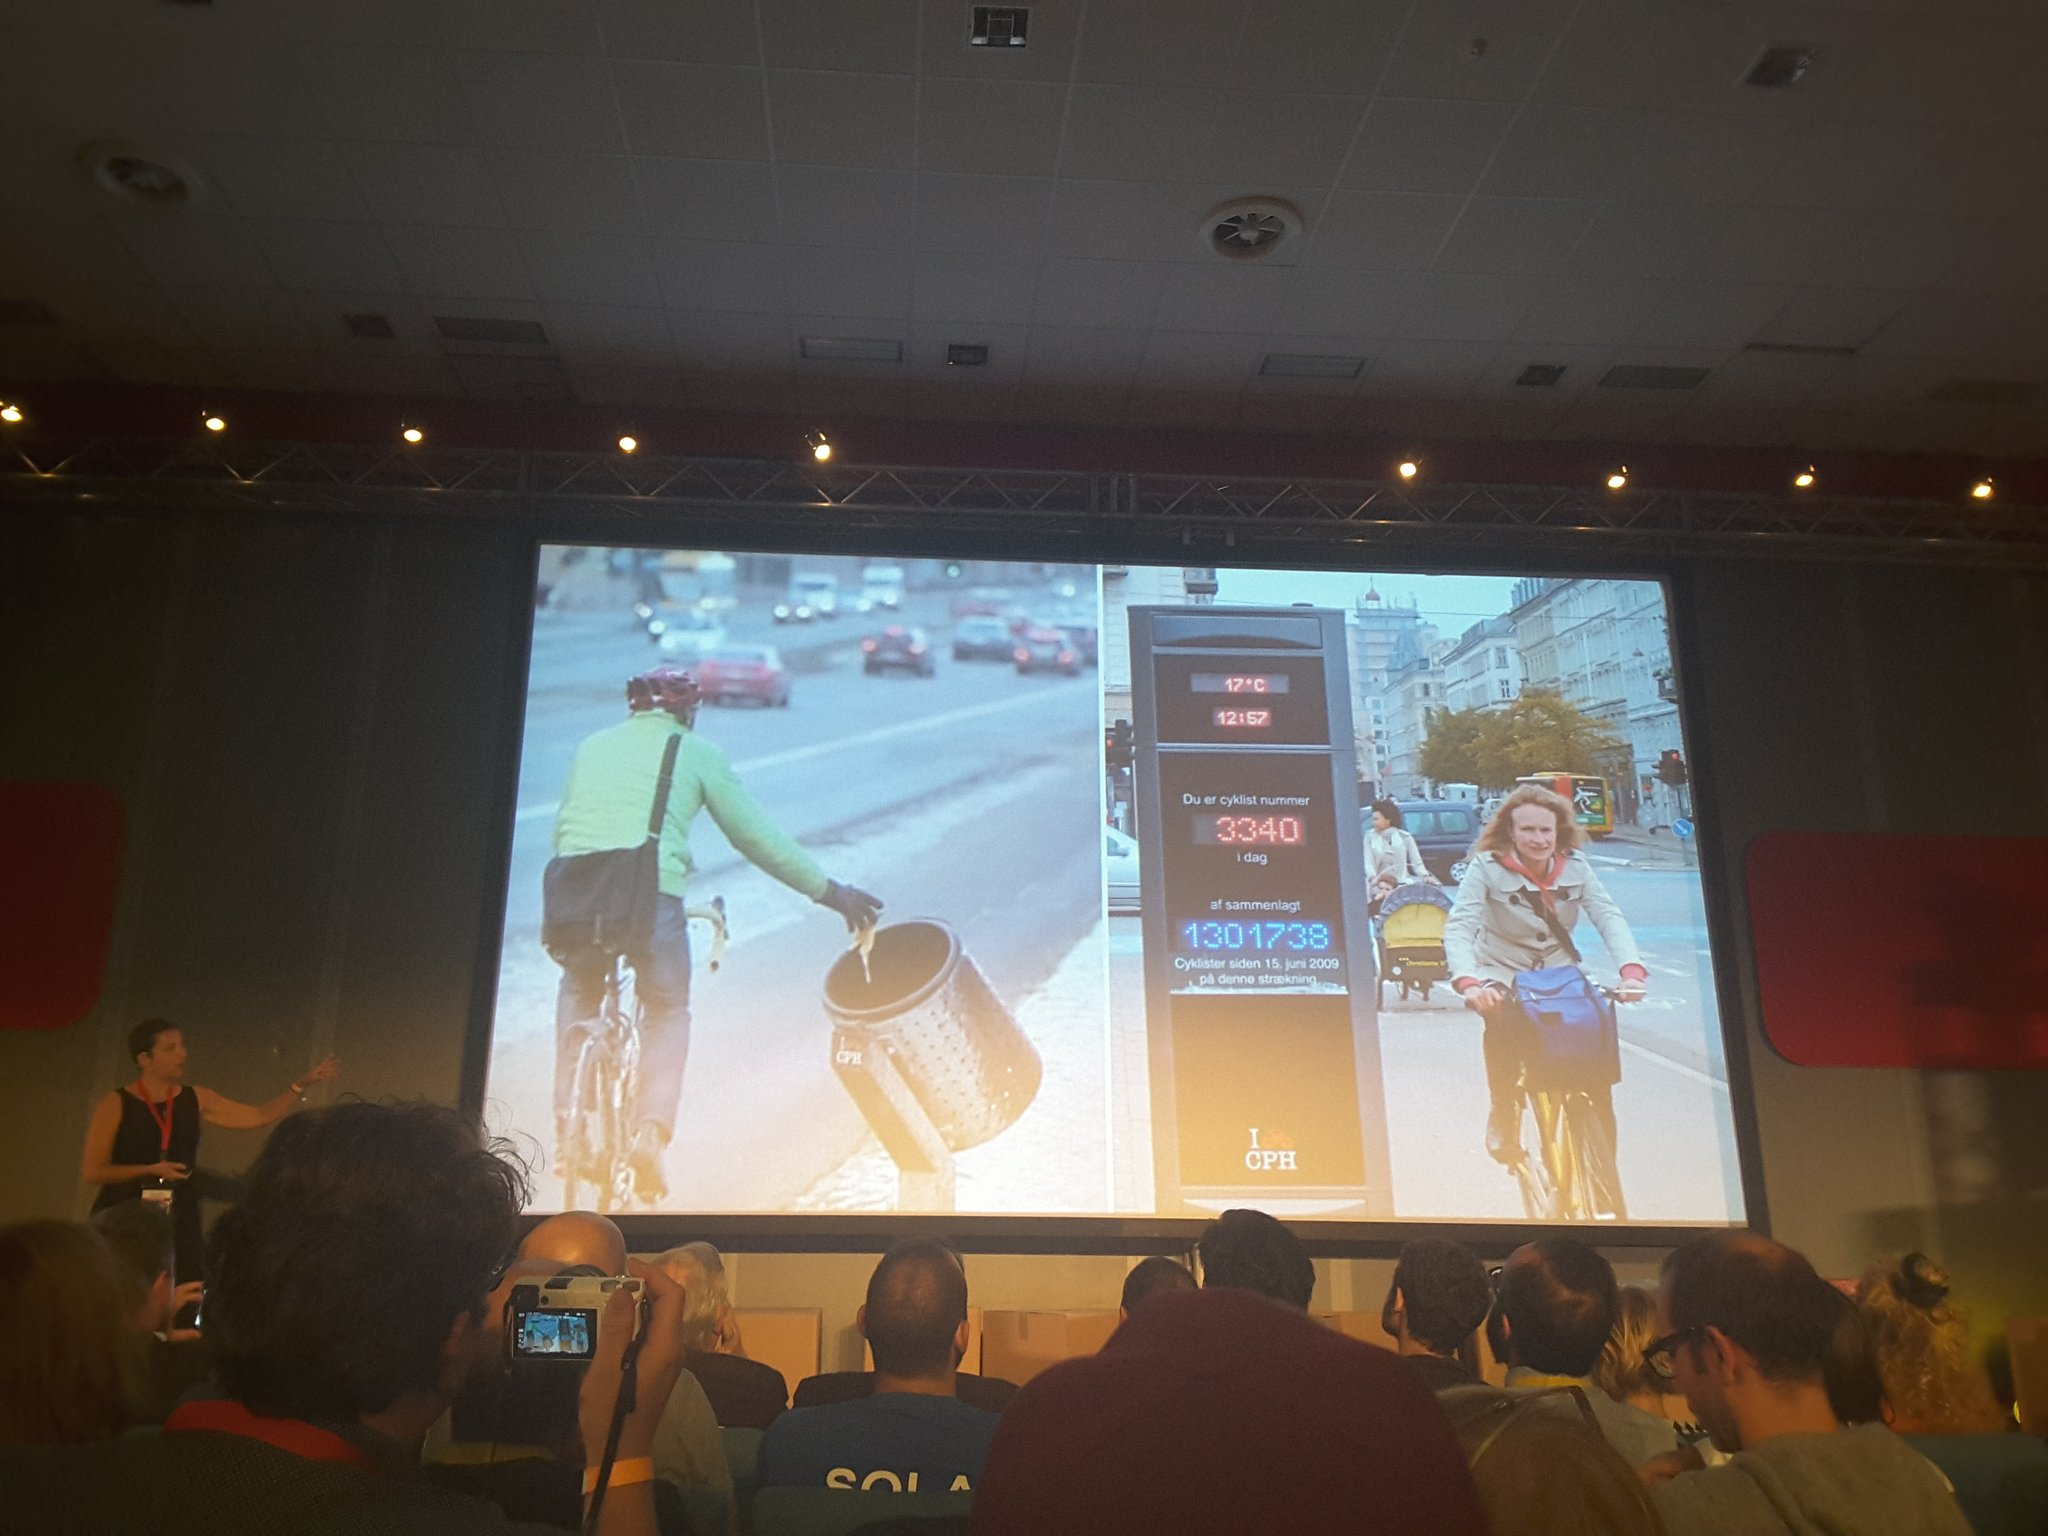 Innovation is based on people. Simona Maschi speaks about the example of the bike counter in Copenhagen  #mfr16 @MakerFaireRome @CIIDnews https://t.co/Kw0naJ5poz